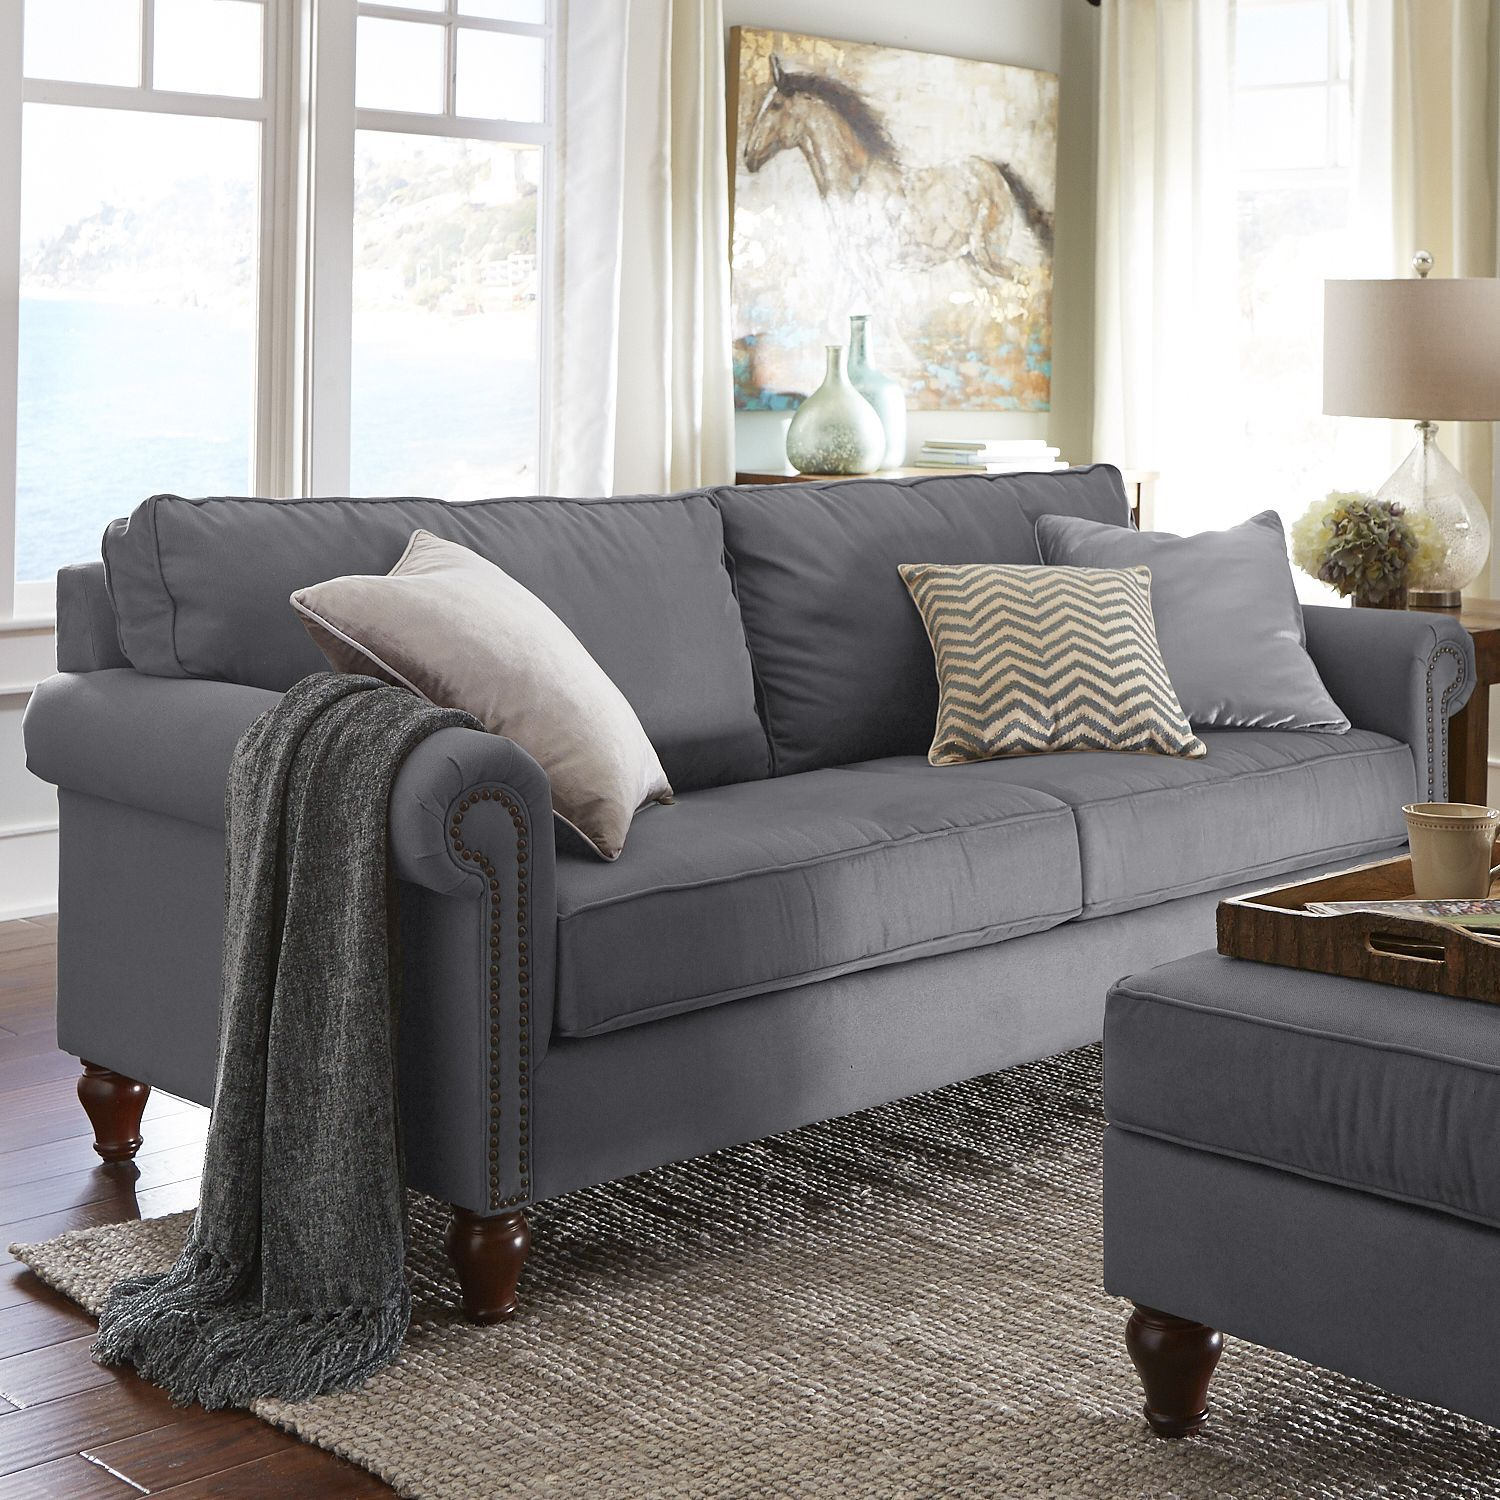 Alton Graphite Gray Rolled Arm Sofa Gunmetal